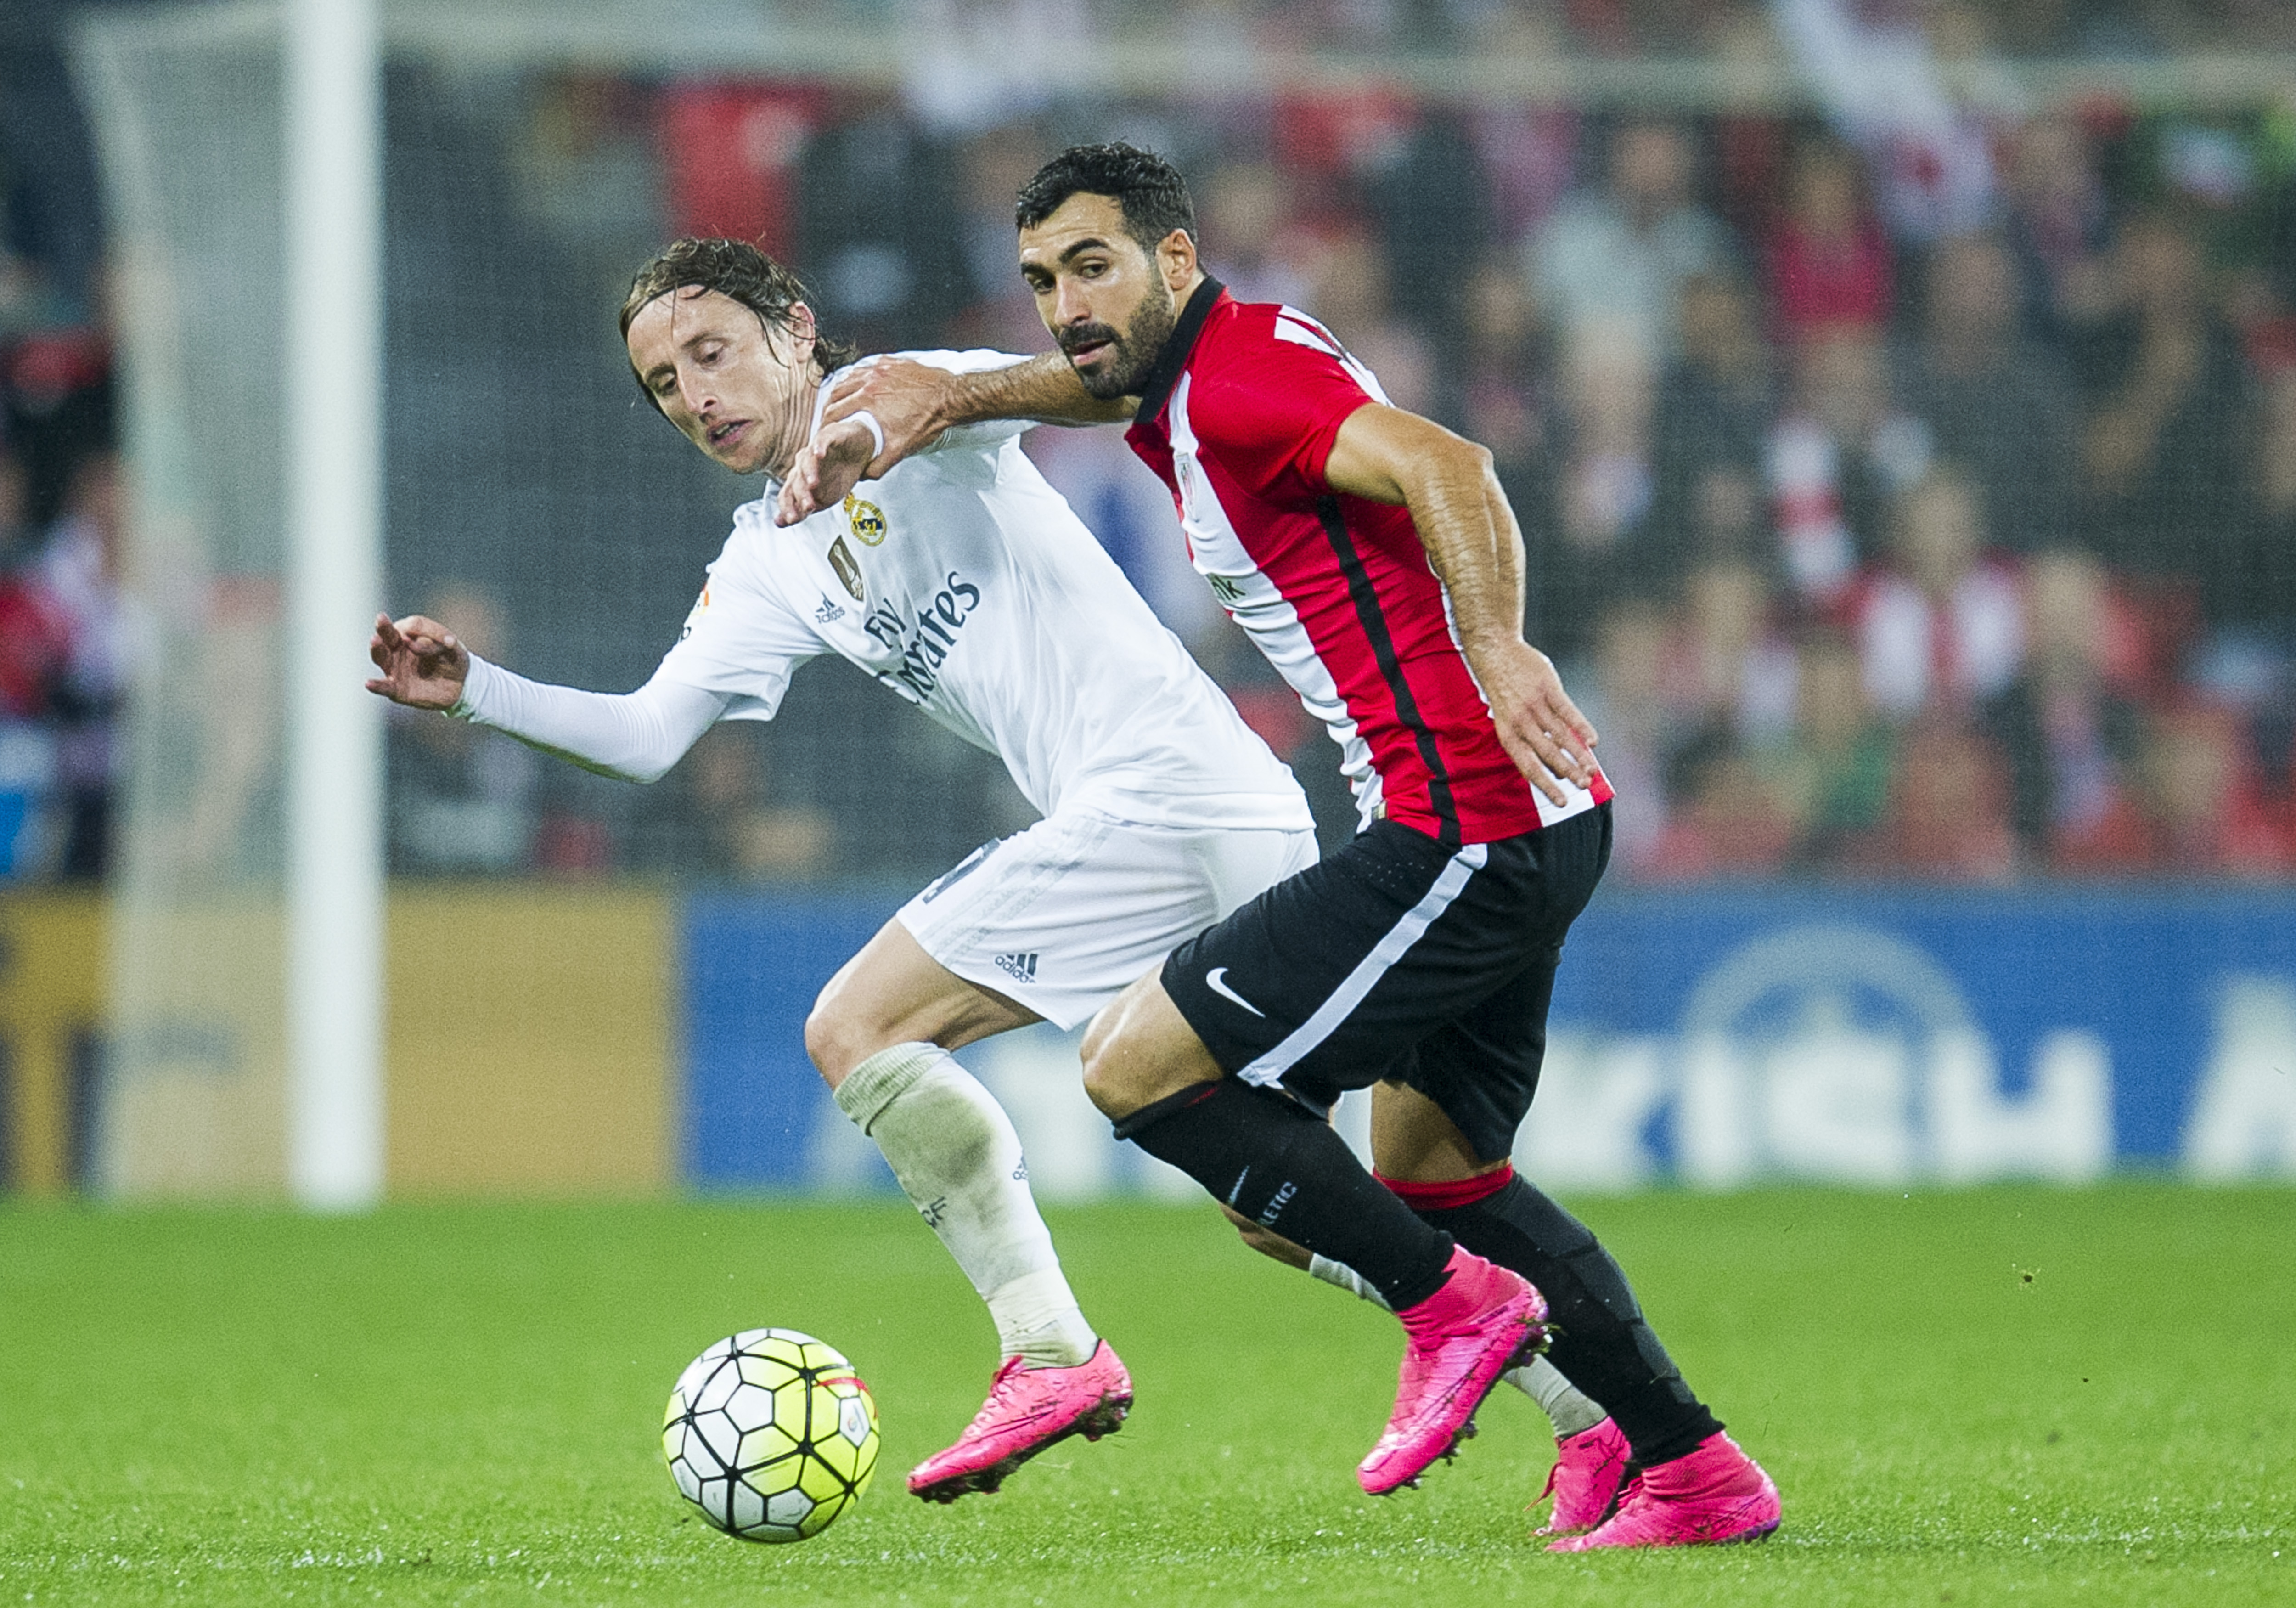 Real Madrid vs. Athletic Bilbao 2016 live stream: Time, TV schedule and how to watch online